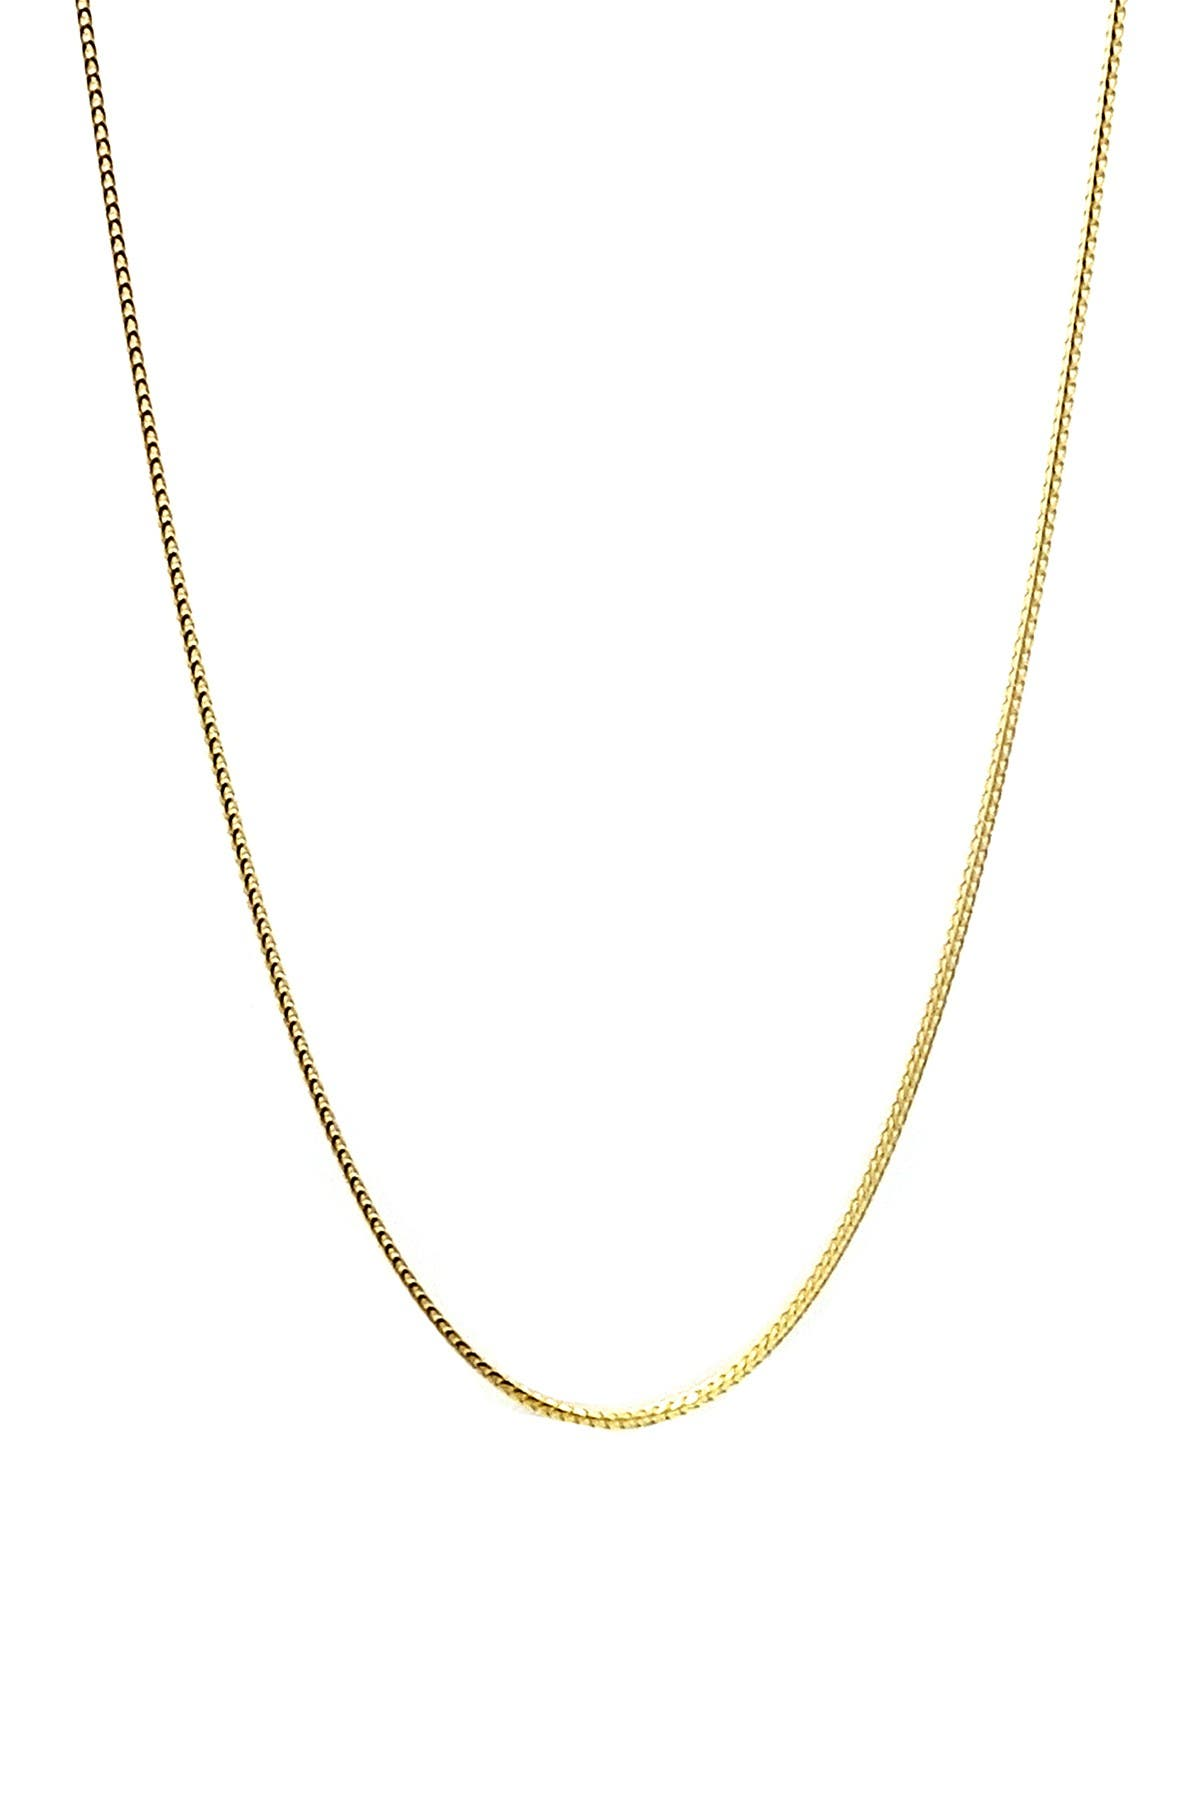 Image of Savvy Cie 18K Gold Vermeil Franco Box Chain Necklace